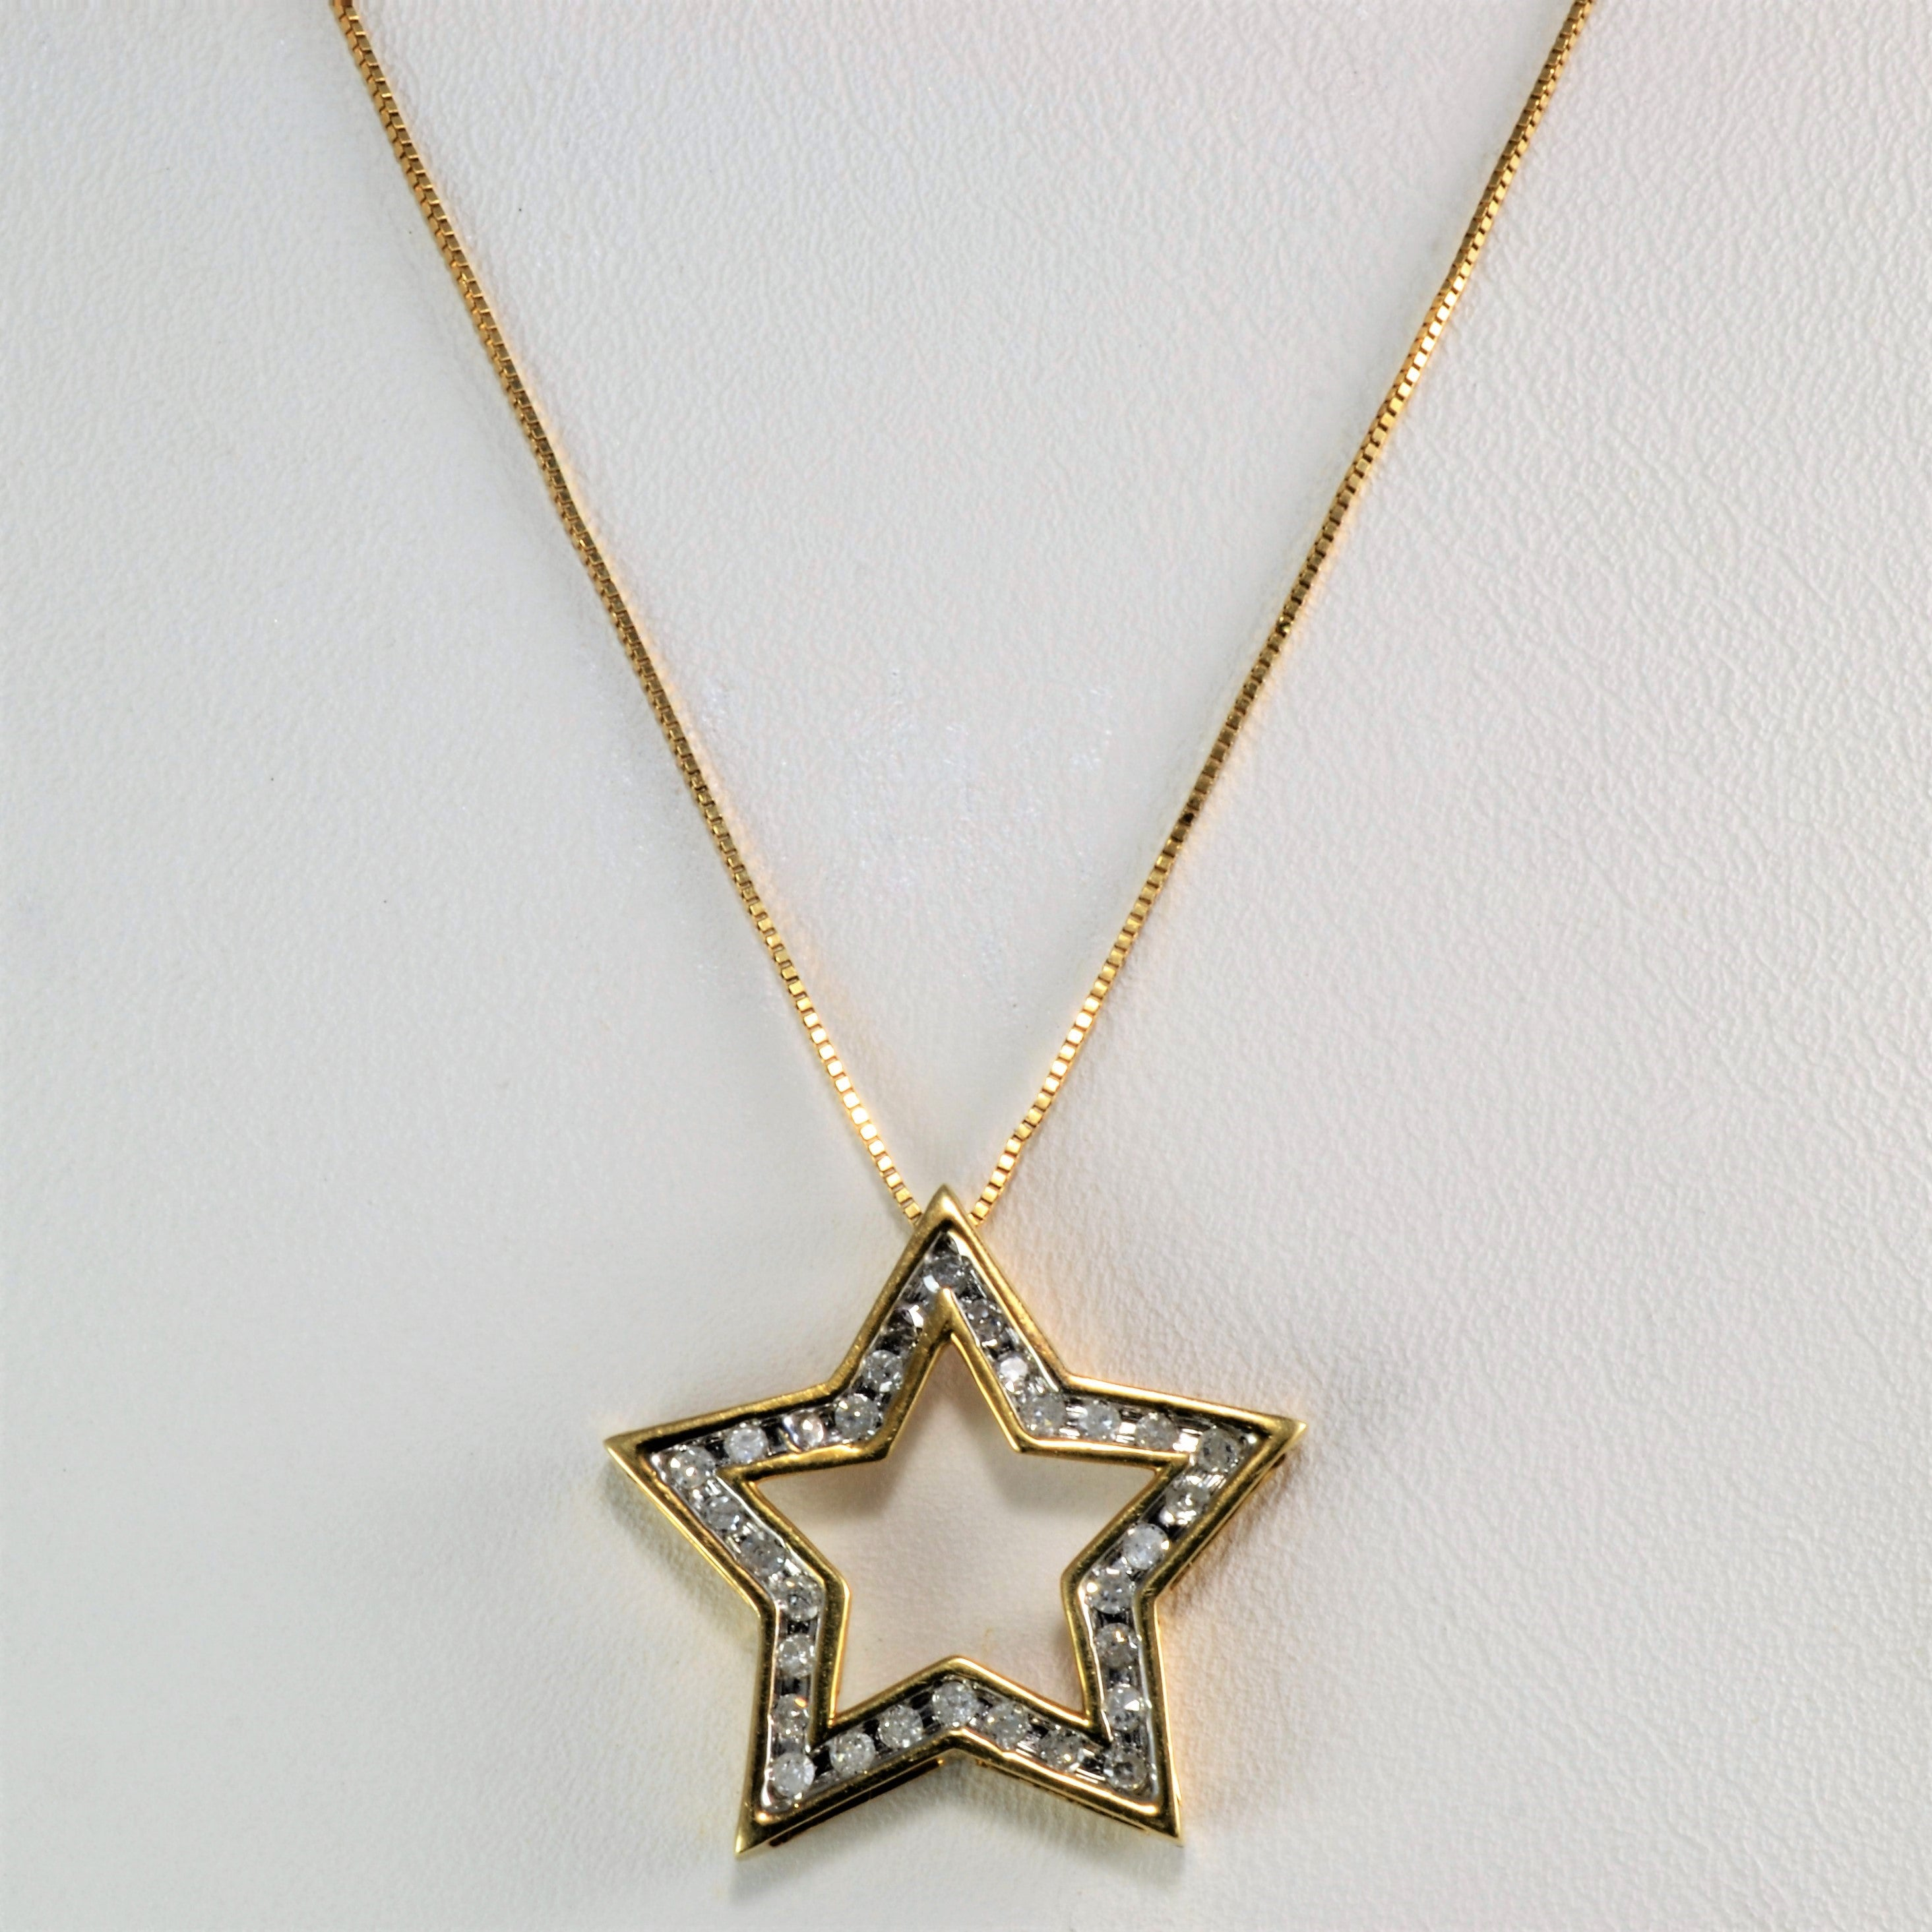 Channel diamond star pendant necklace 025 ctw 18 100 ways channel diamond star pendant necklace 025 ctw 18 aloadofball Choice Image